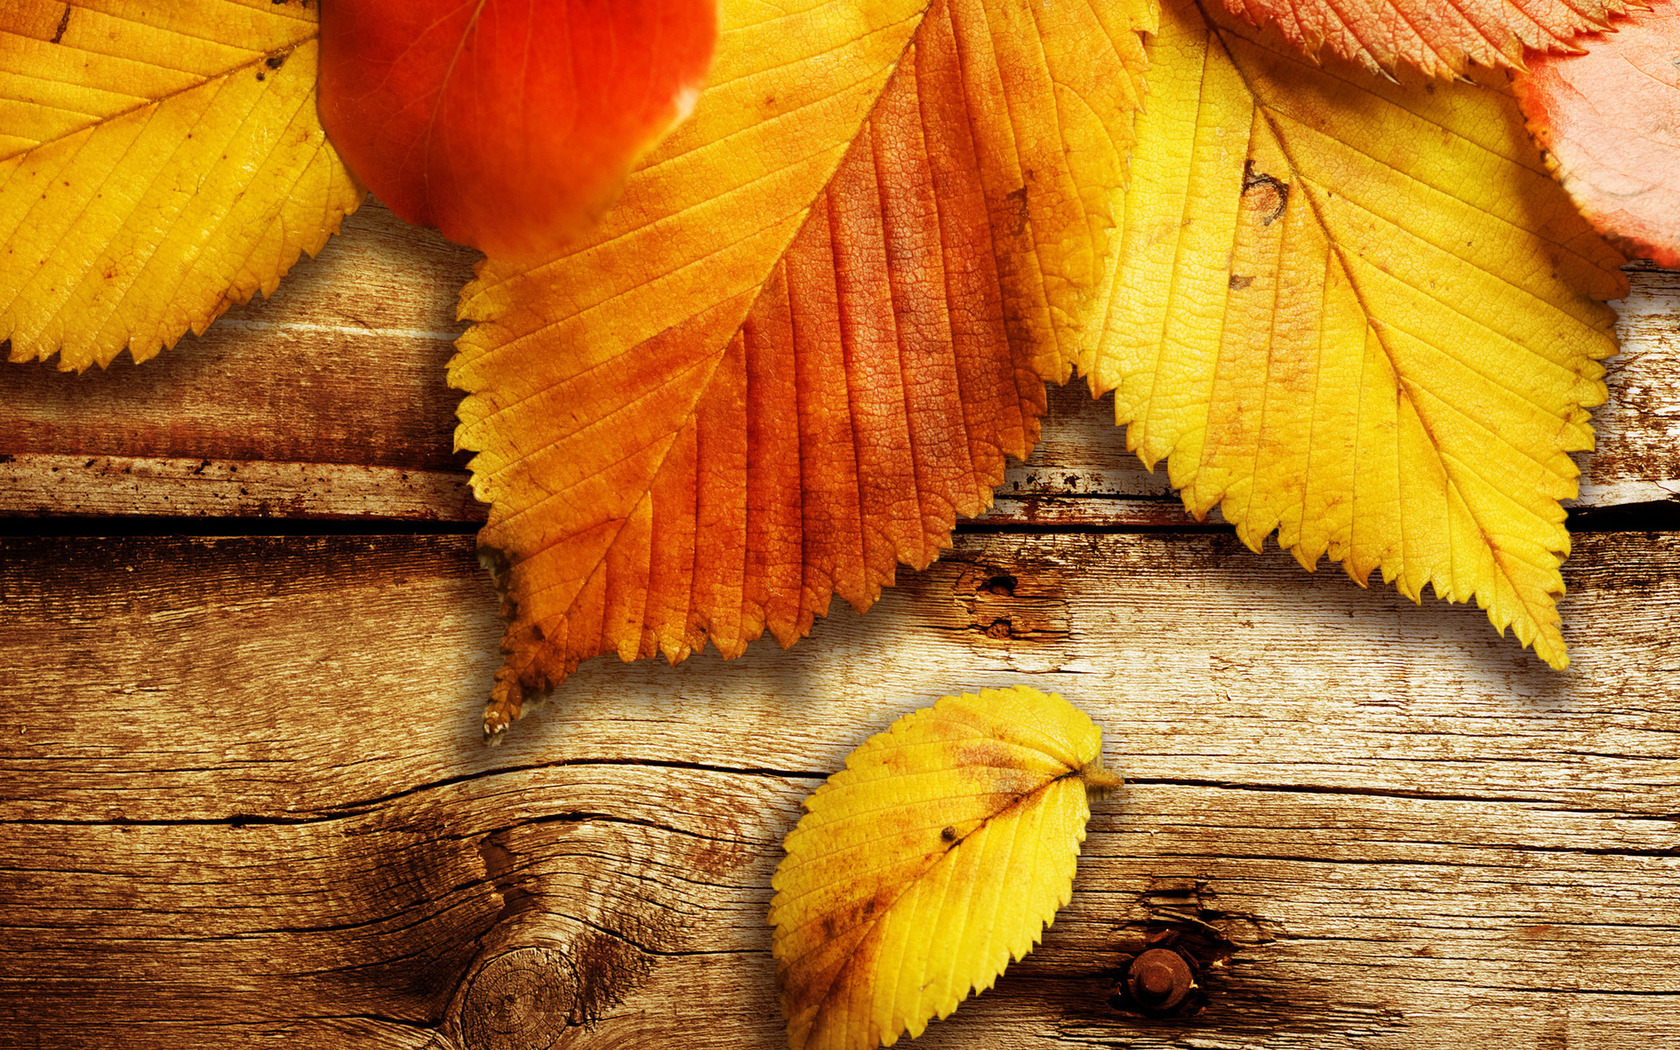 Fall Autumn Wallpapers Archives - HD Desktop Wallpapers ...